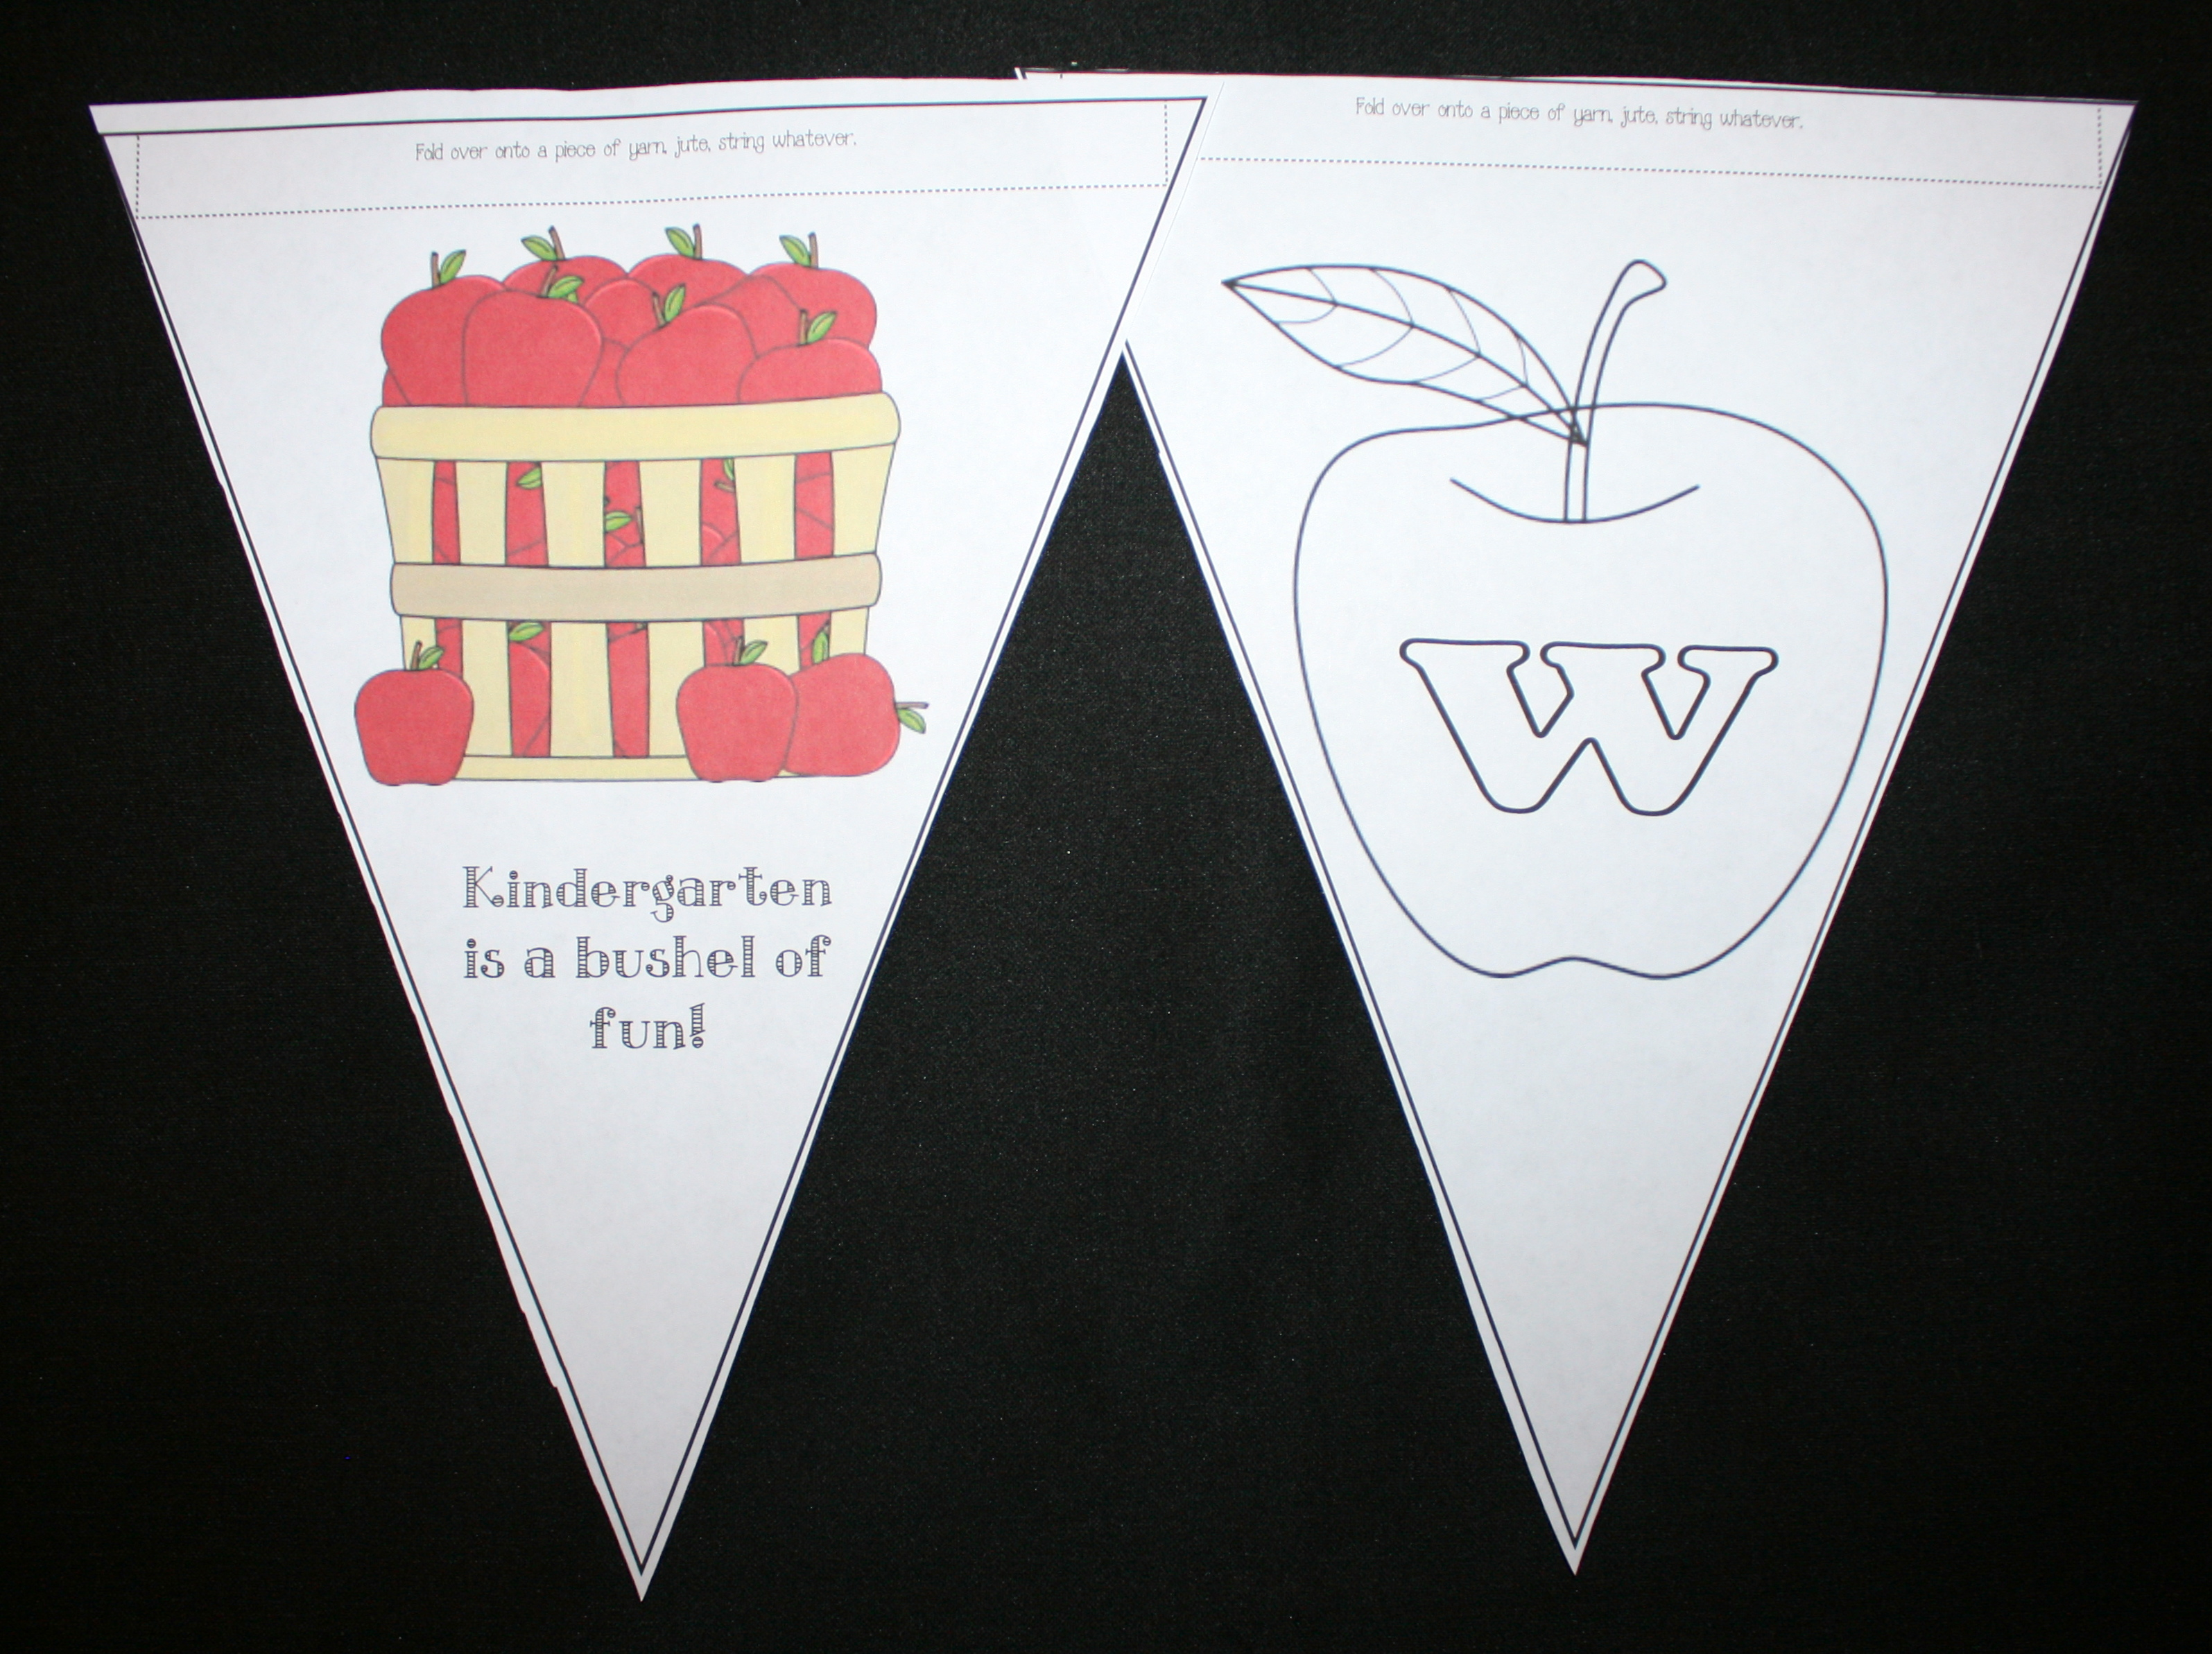 back to school ideas, ideas for the 1st day of school, free banners for school, welcome banners, kid  generated decorations, kid-generated bulletin boards, apple activities, apple decorations, apple welcome sign, pirate activities, pirate decorations, pirate welcome banner, cow activities, cow welcome banner, cow decorations, owl activities, owl decorations, owl welcome banner, september bulletin board ideas, back to school bulletin board ideas, back to school decorations, activities for the first day of school